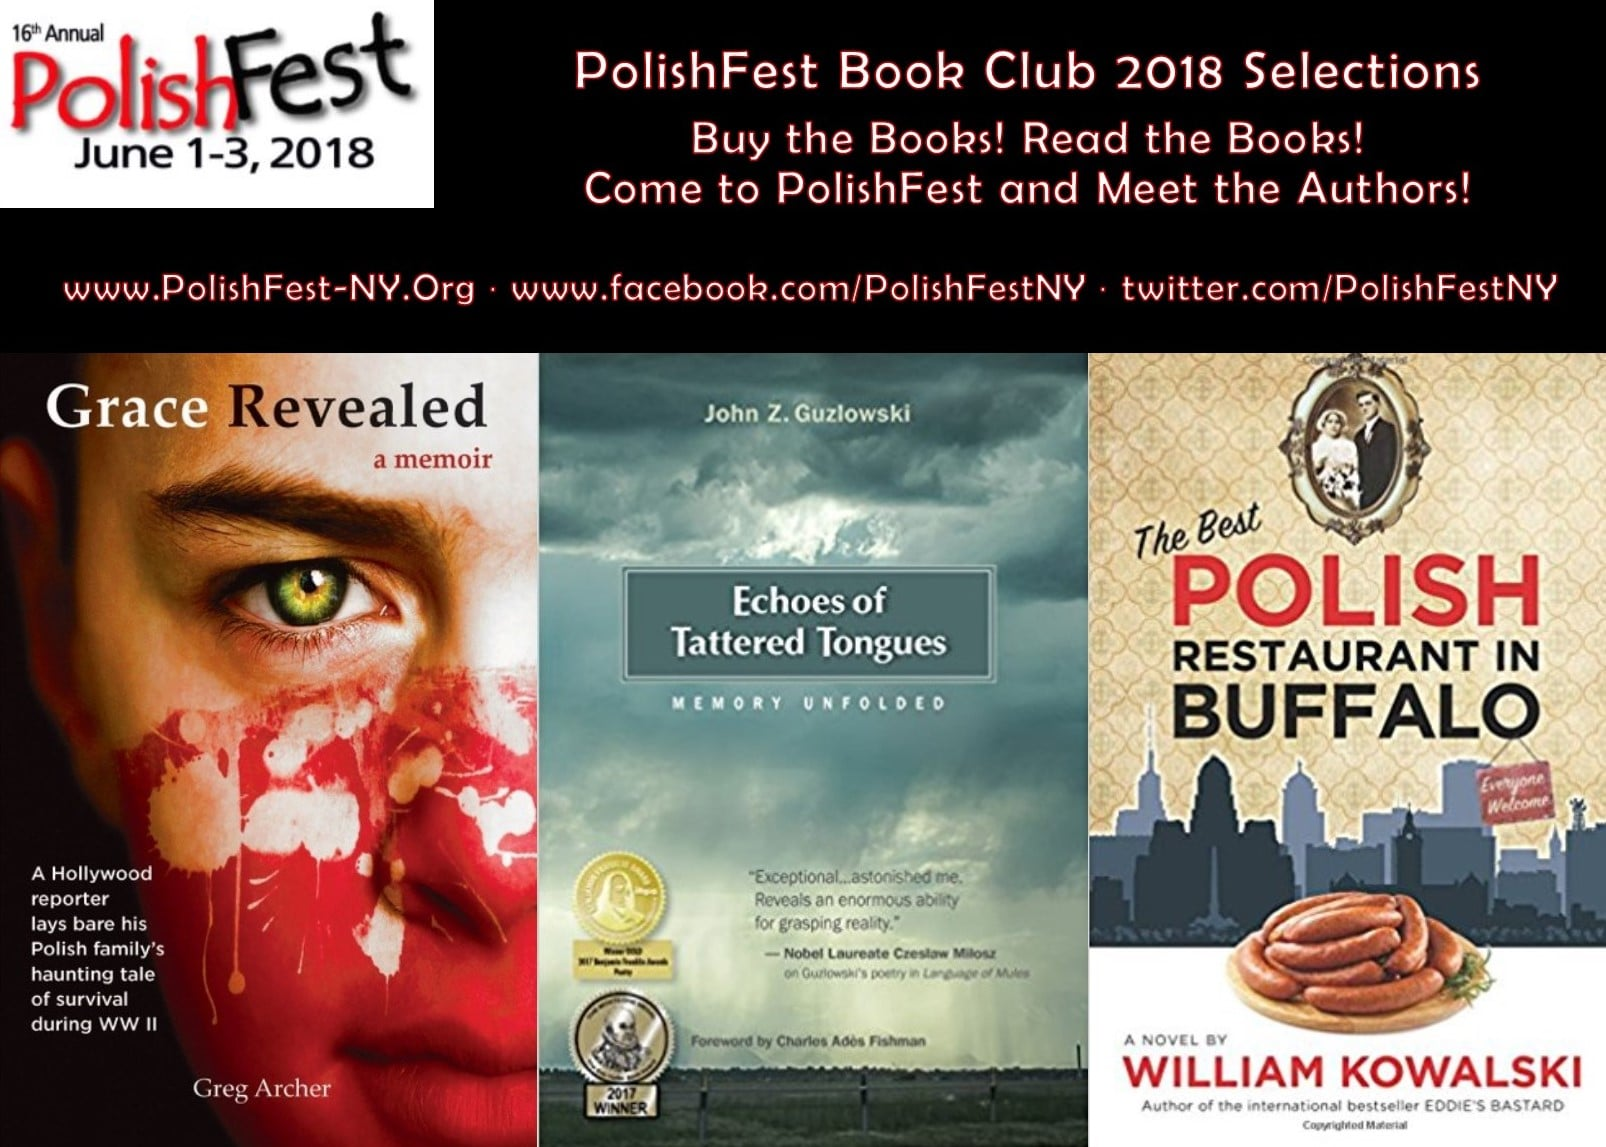 Poster of book club selections.